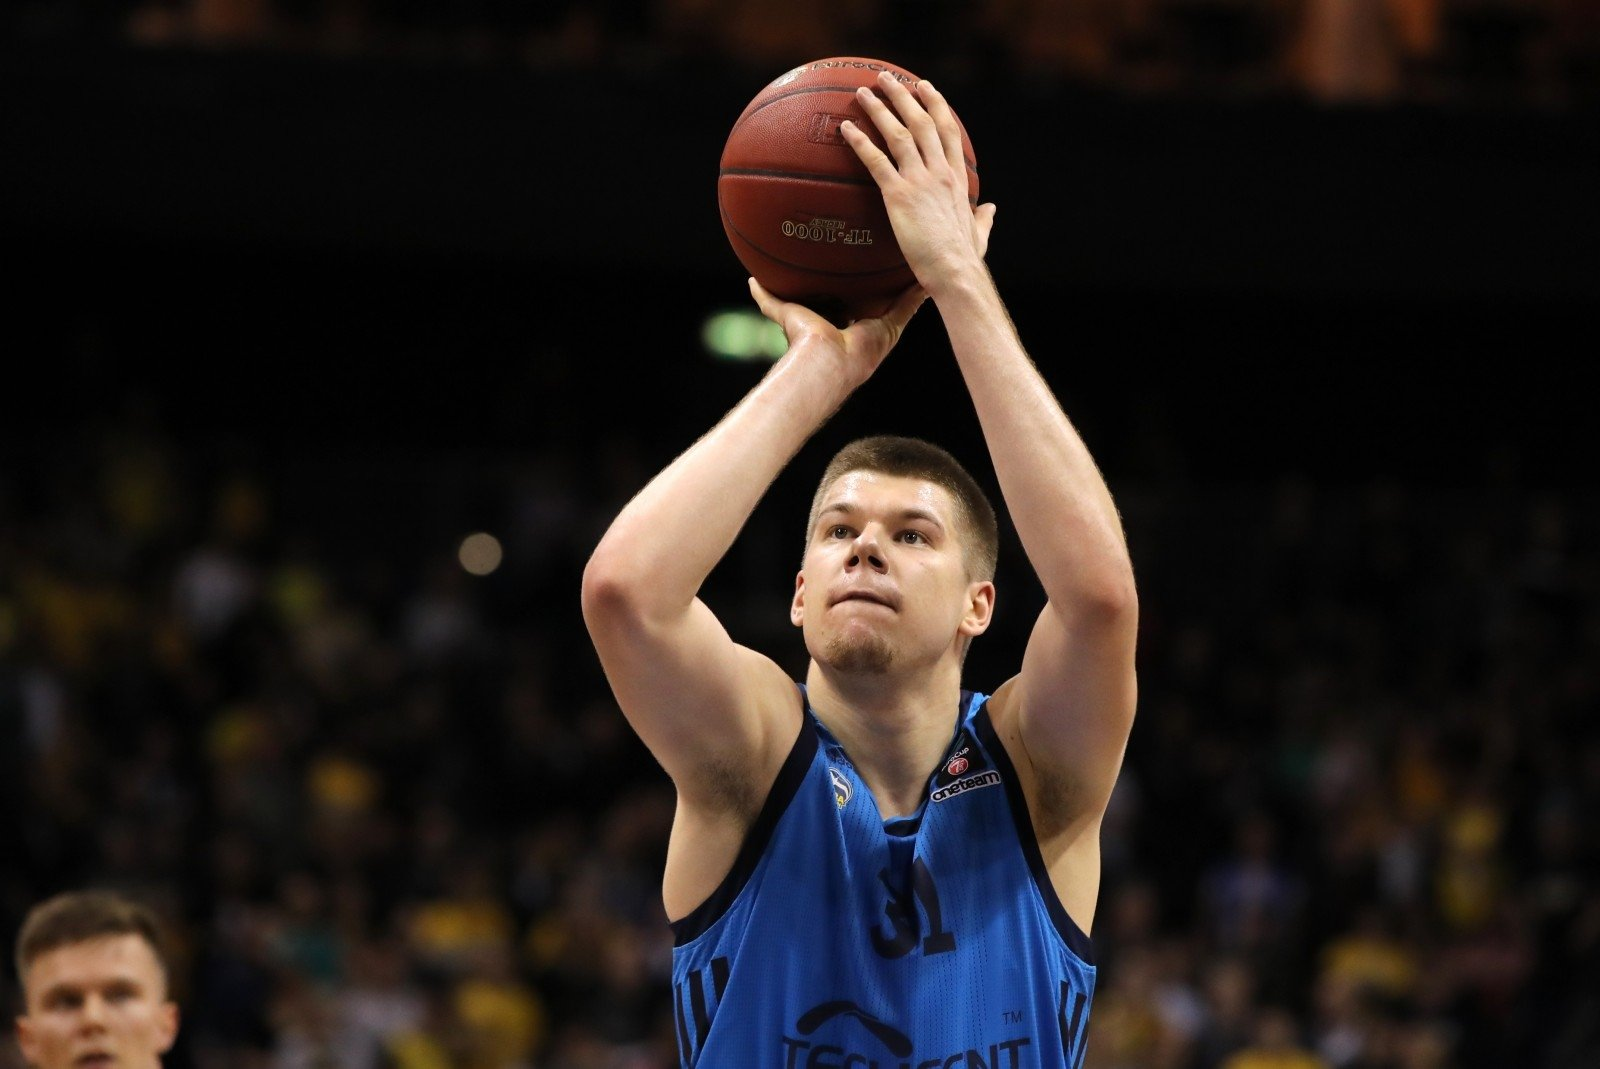 Giedraitis has been successful – ALBA will go to Spain to play the ...